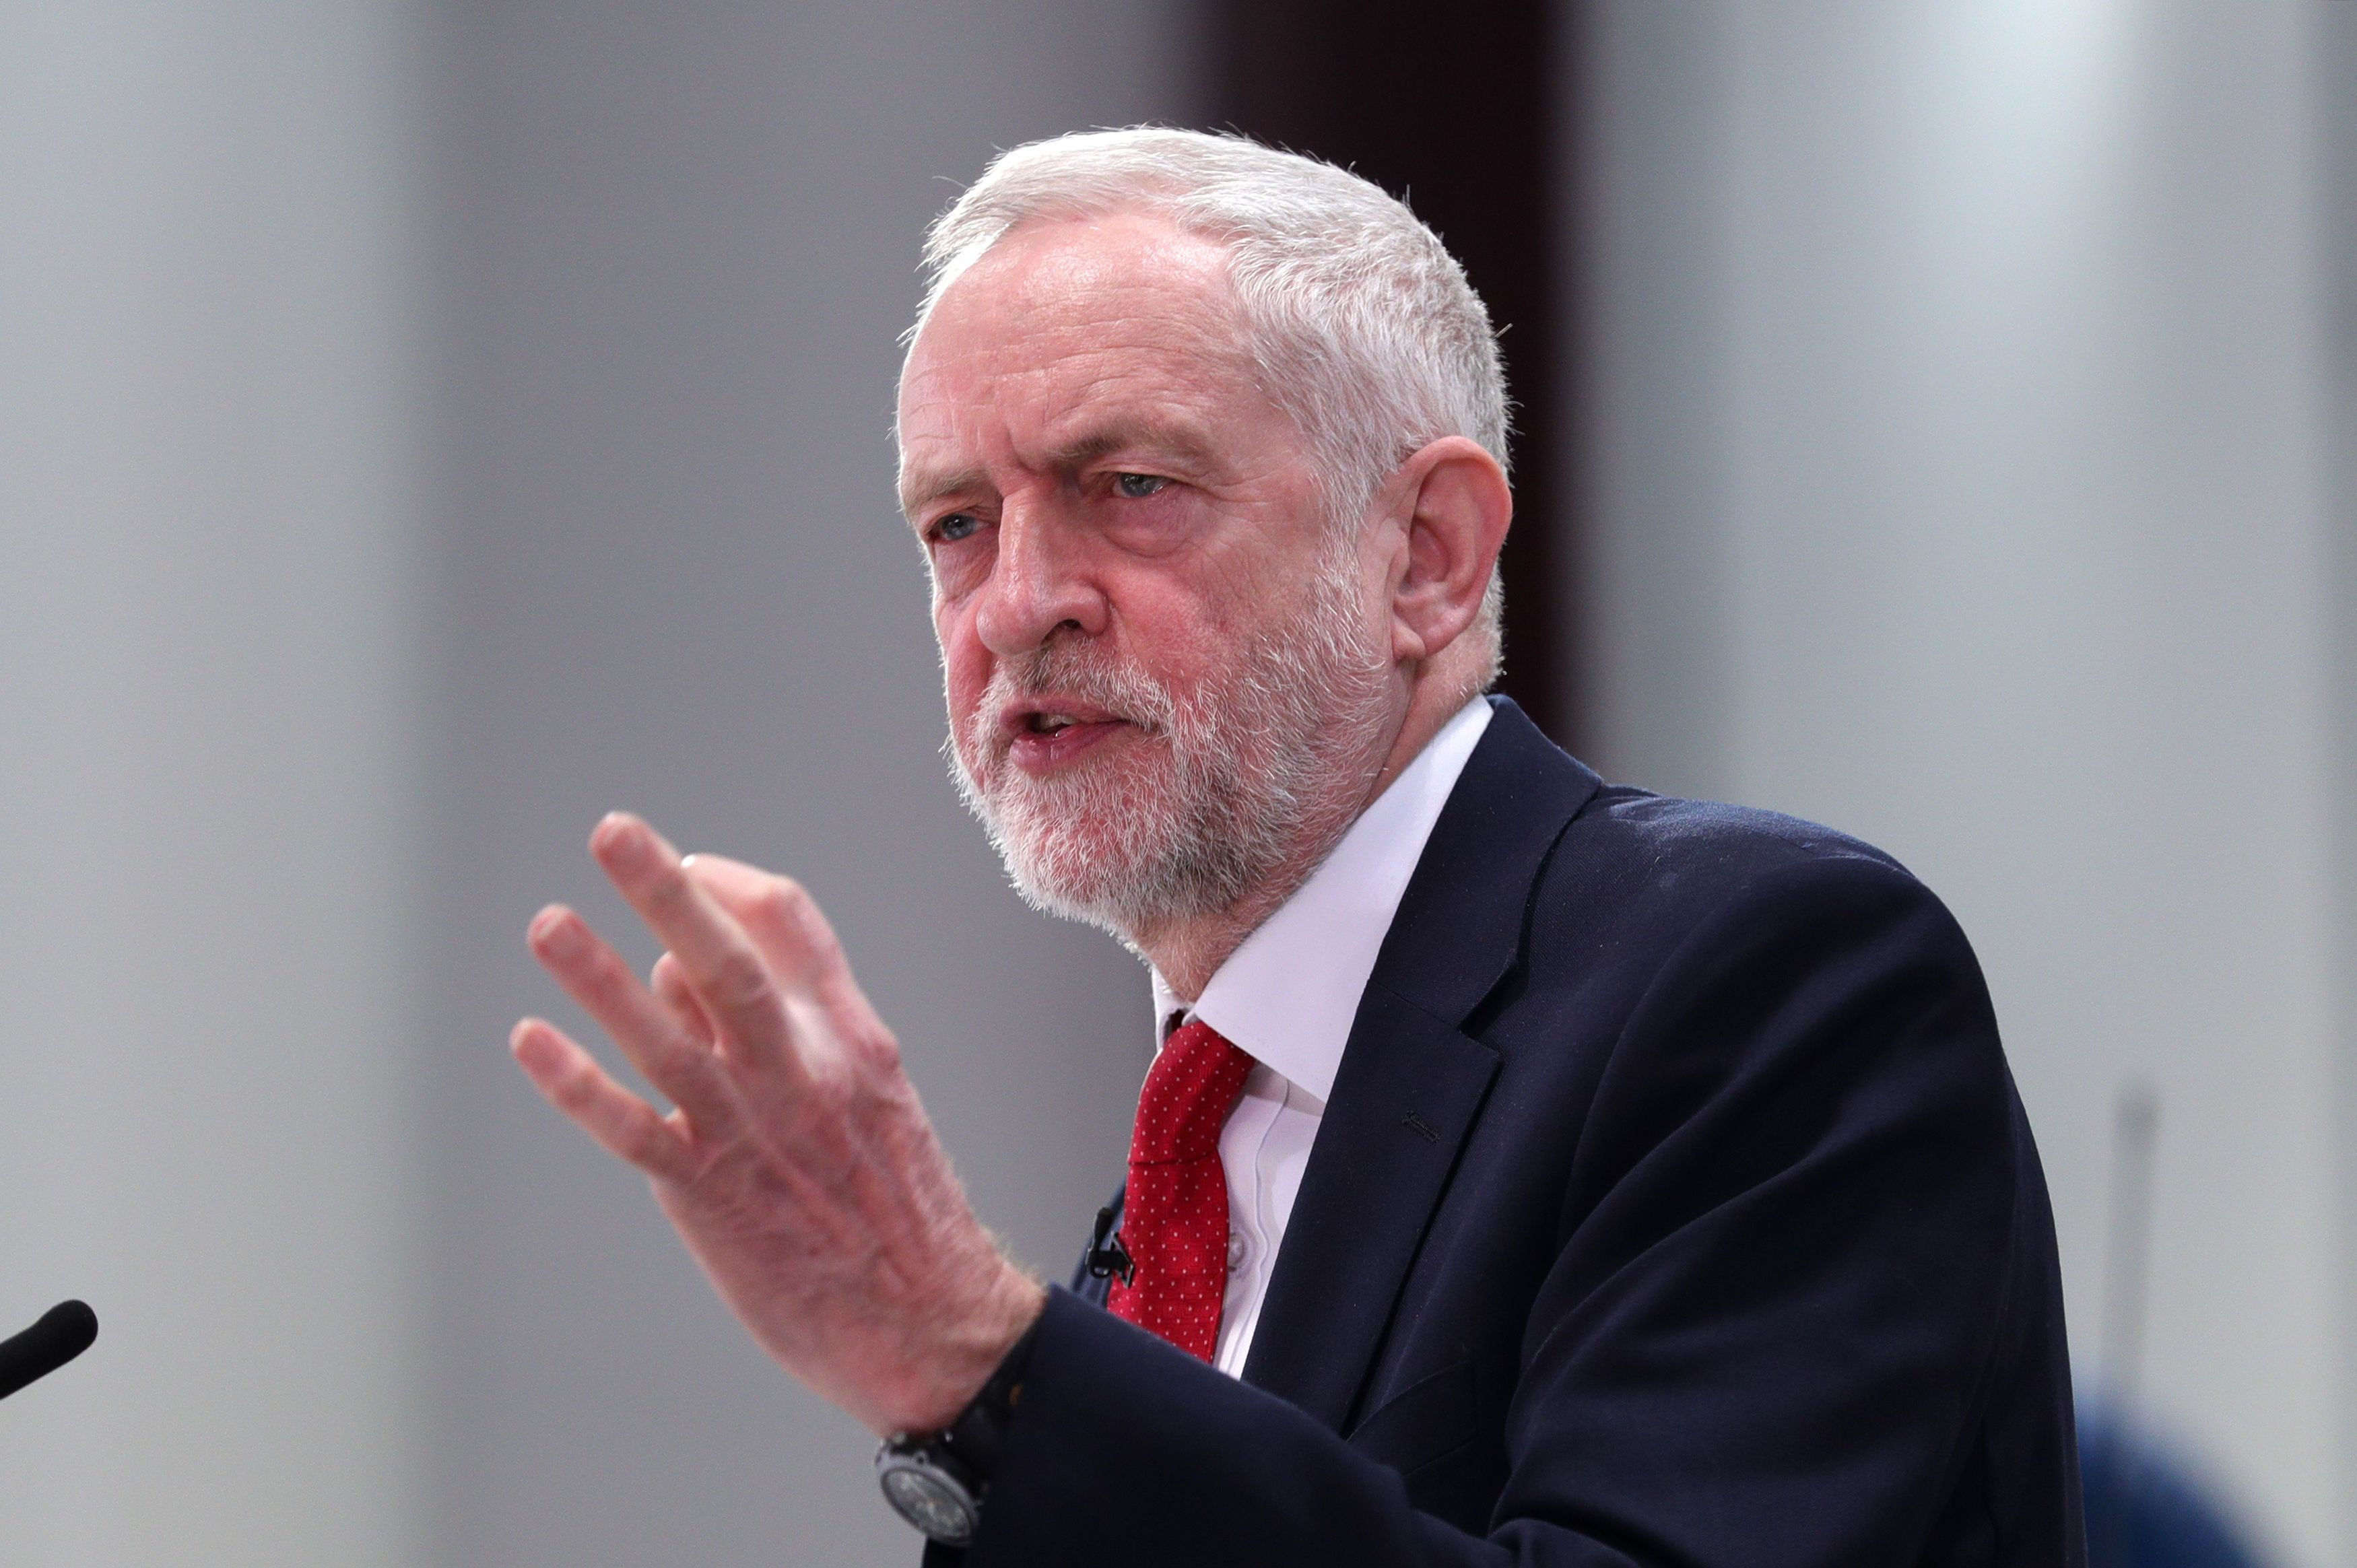 Labour suspends party members in antisemitic Facebook group